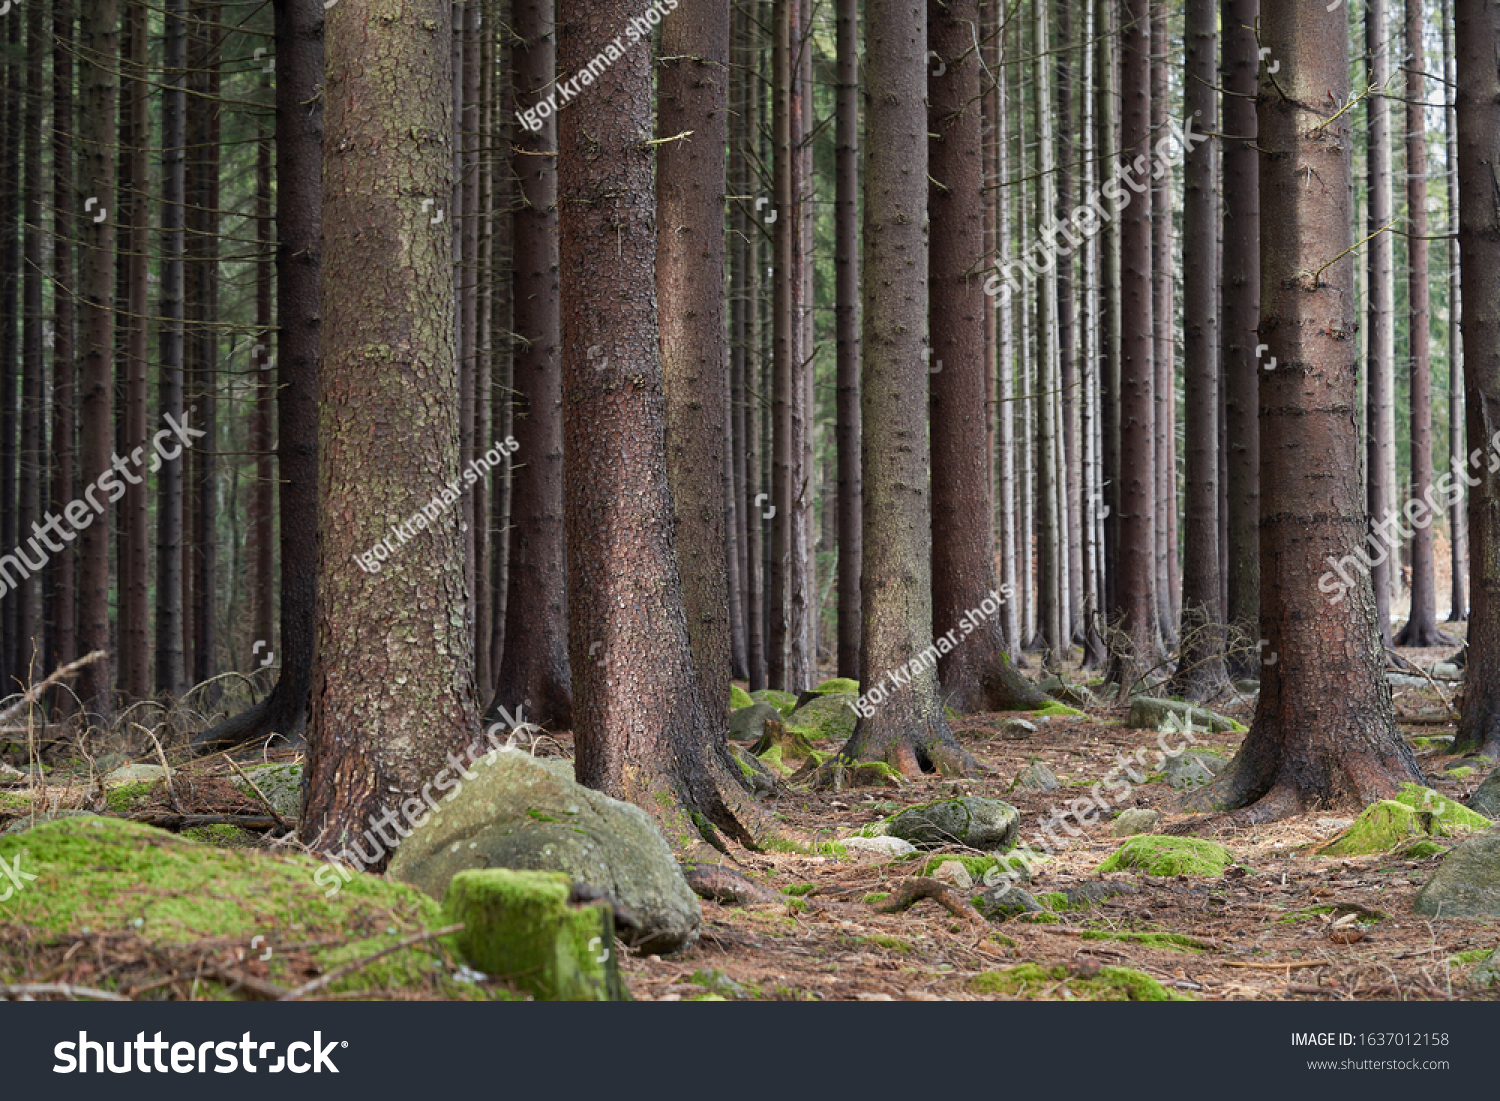 Scenic view of spruce trees. Spruce forest on a sunny day. Needles, moss and rocks on the ground.